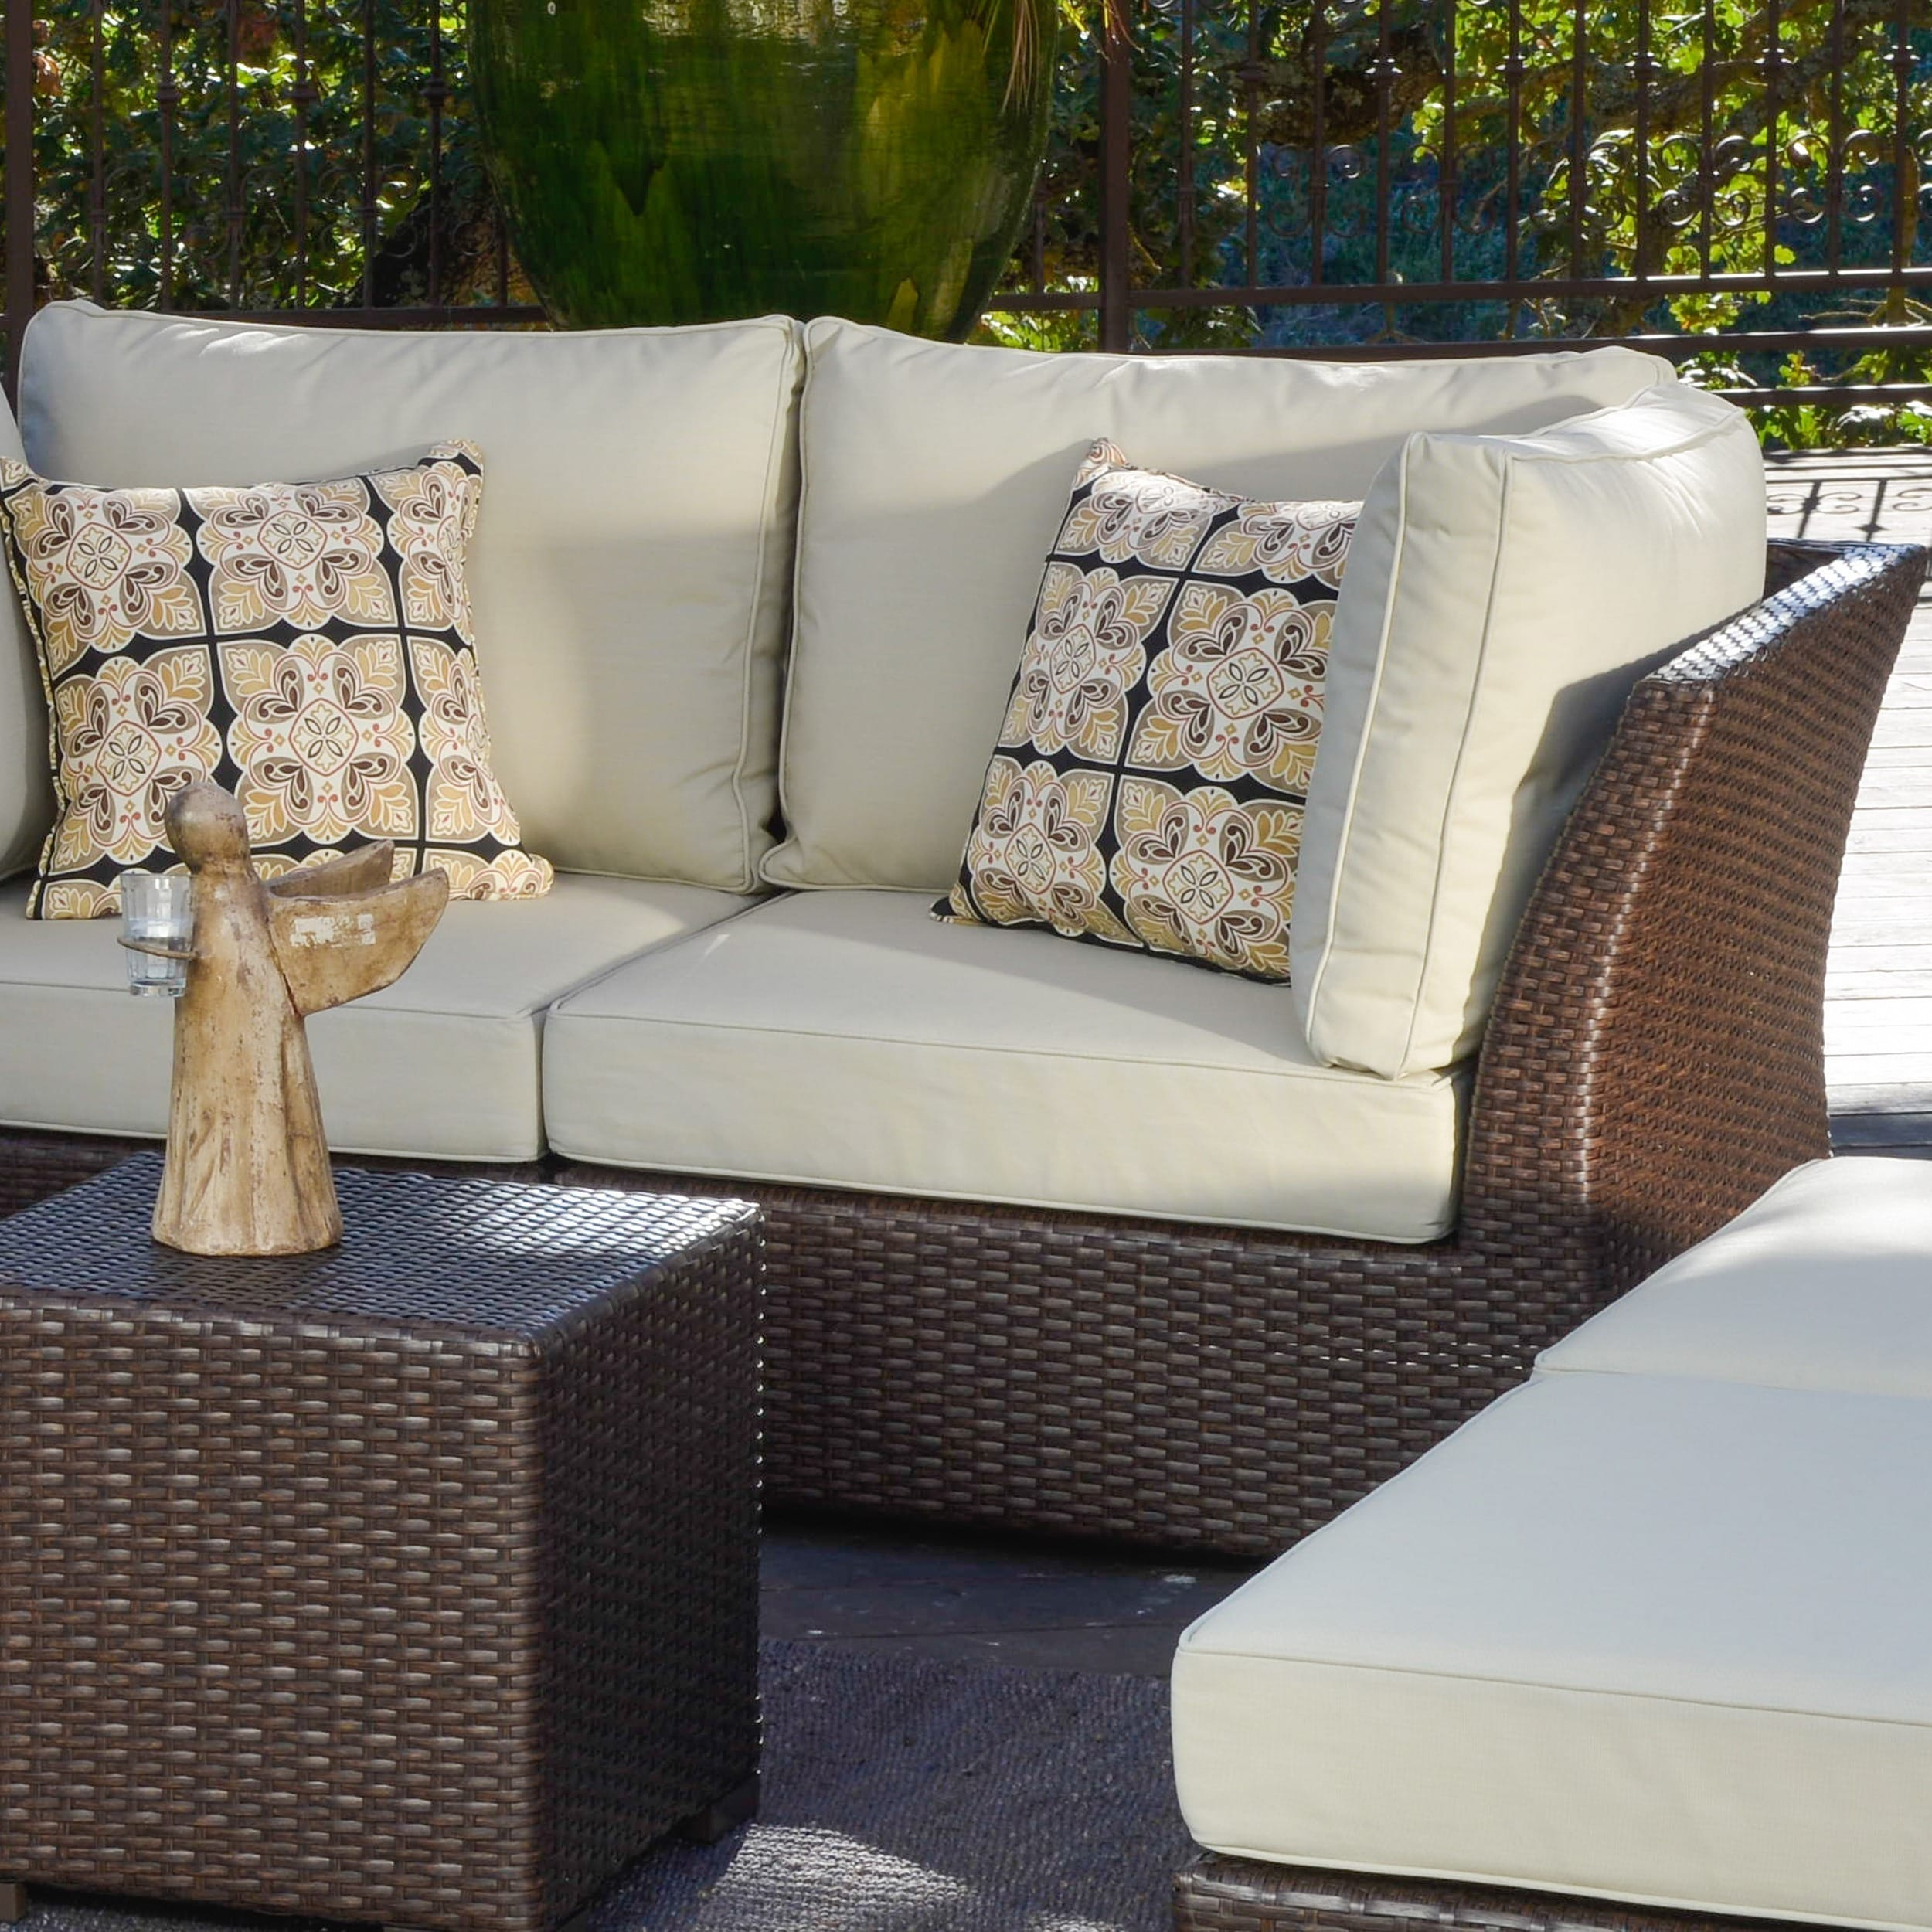 from wicker white patio us ahfhome furniture source fresh sourcedisappearing disappearing of clearance